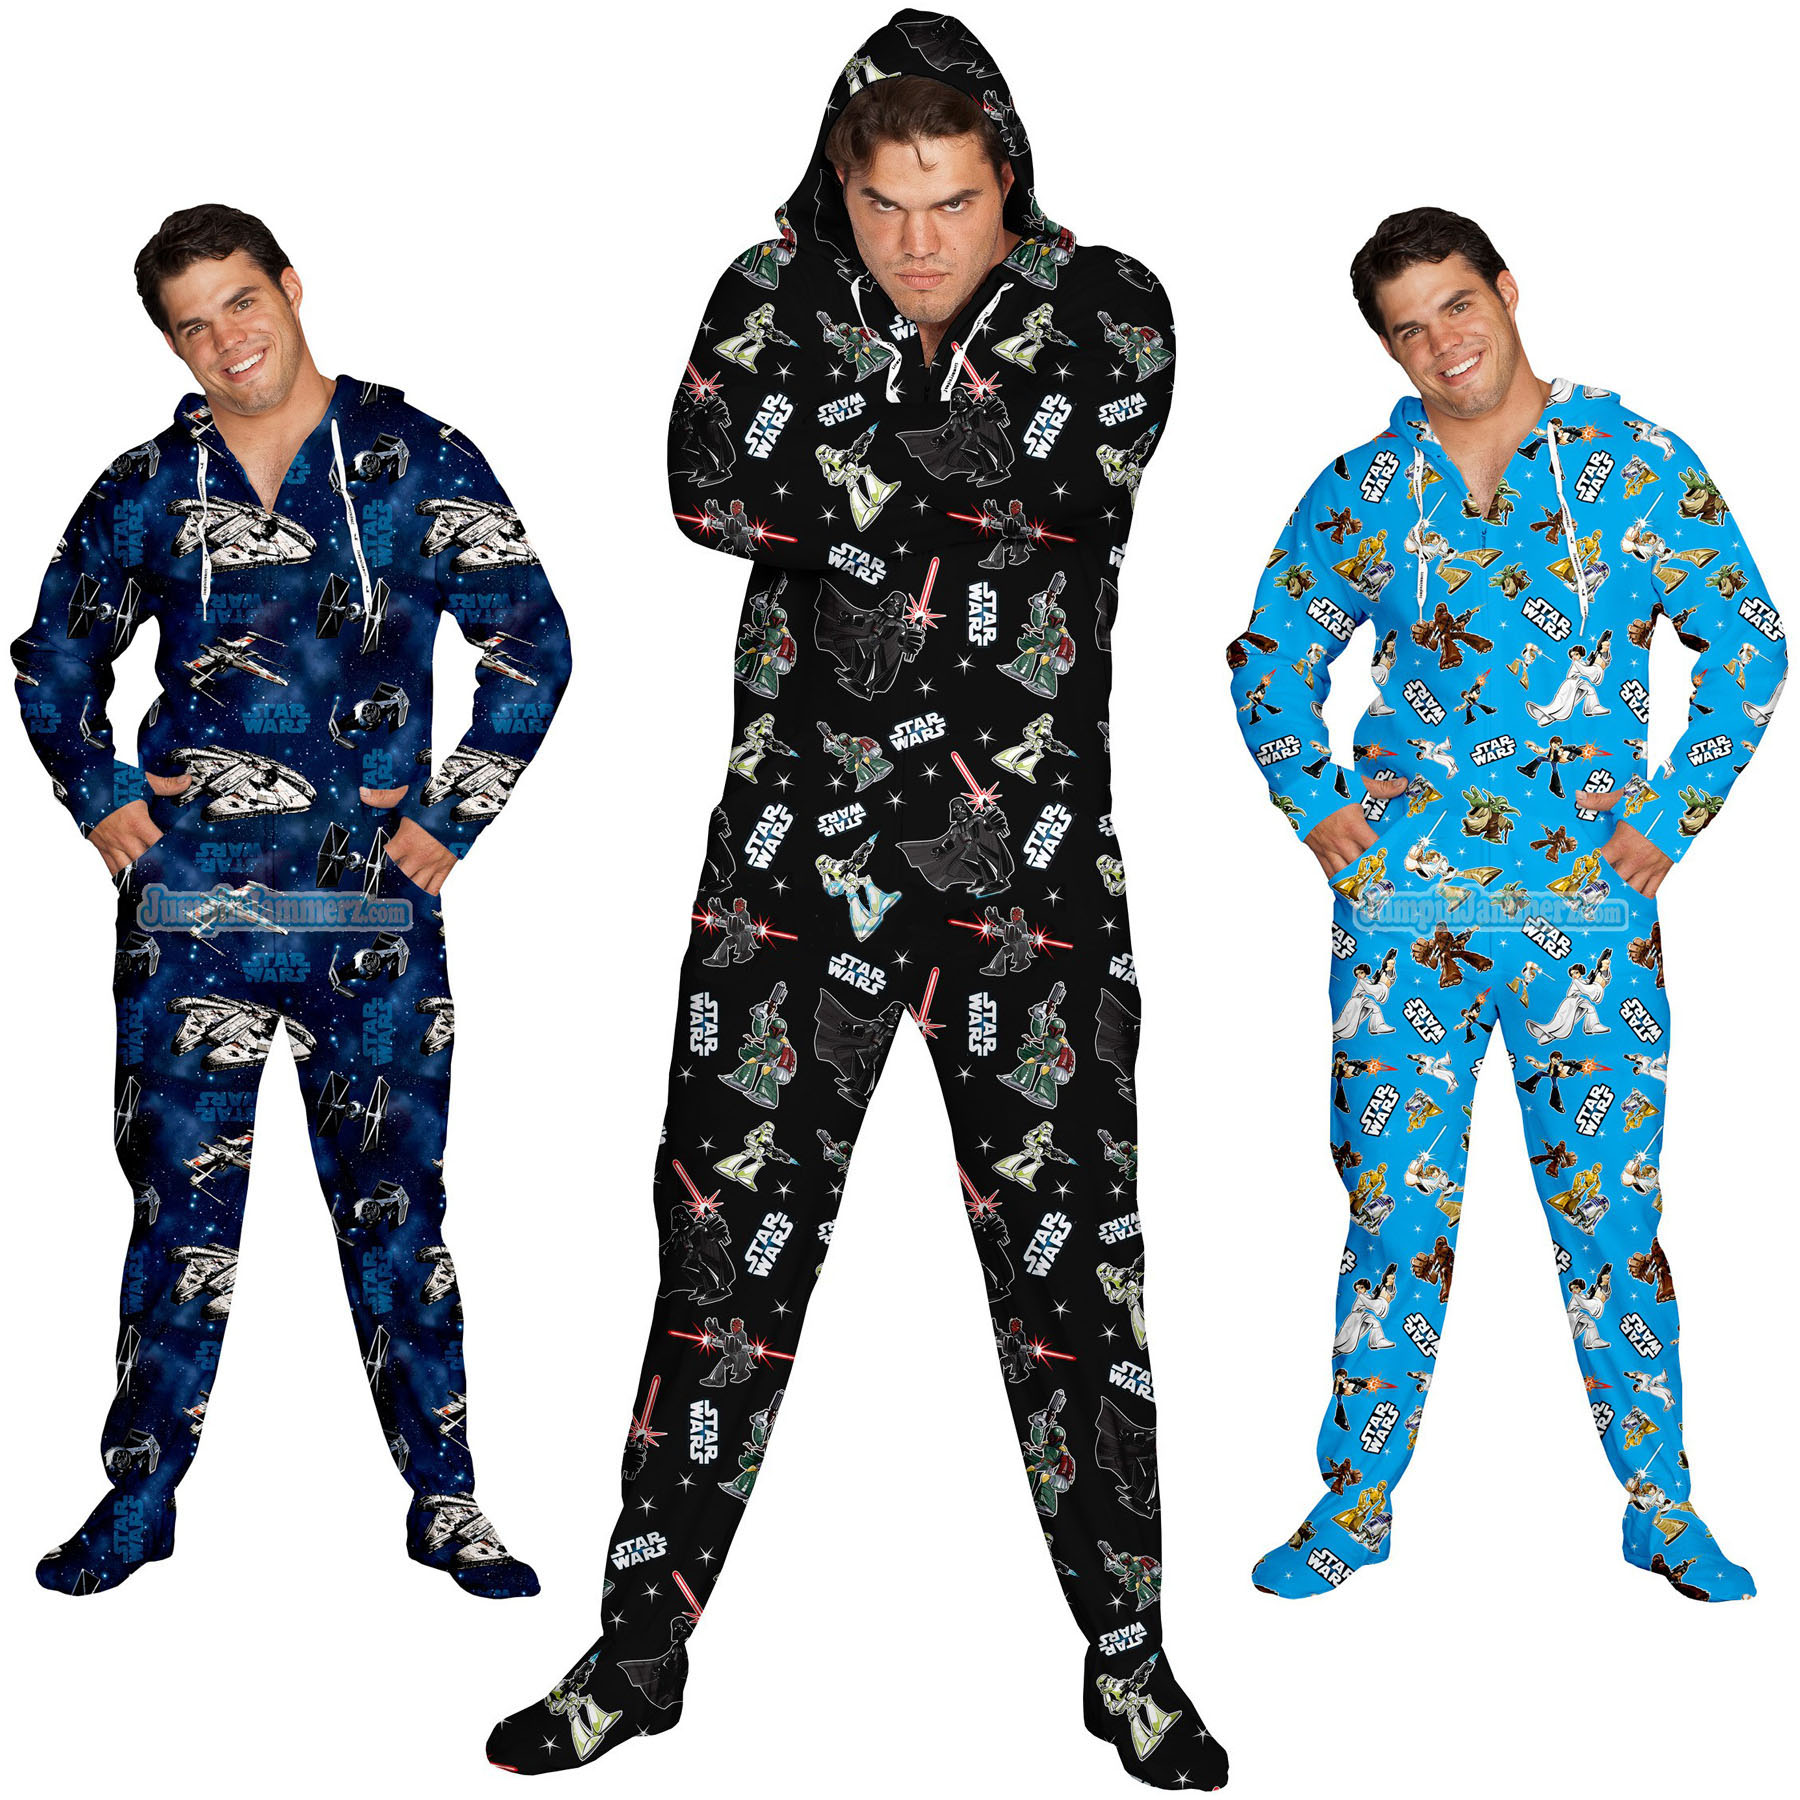 star wars footed pajamas - Star Wars Christmas Pajamas